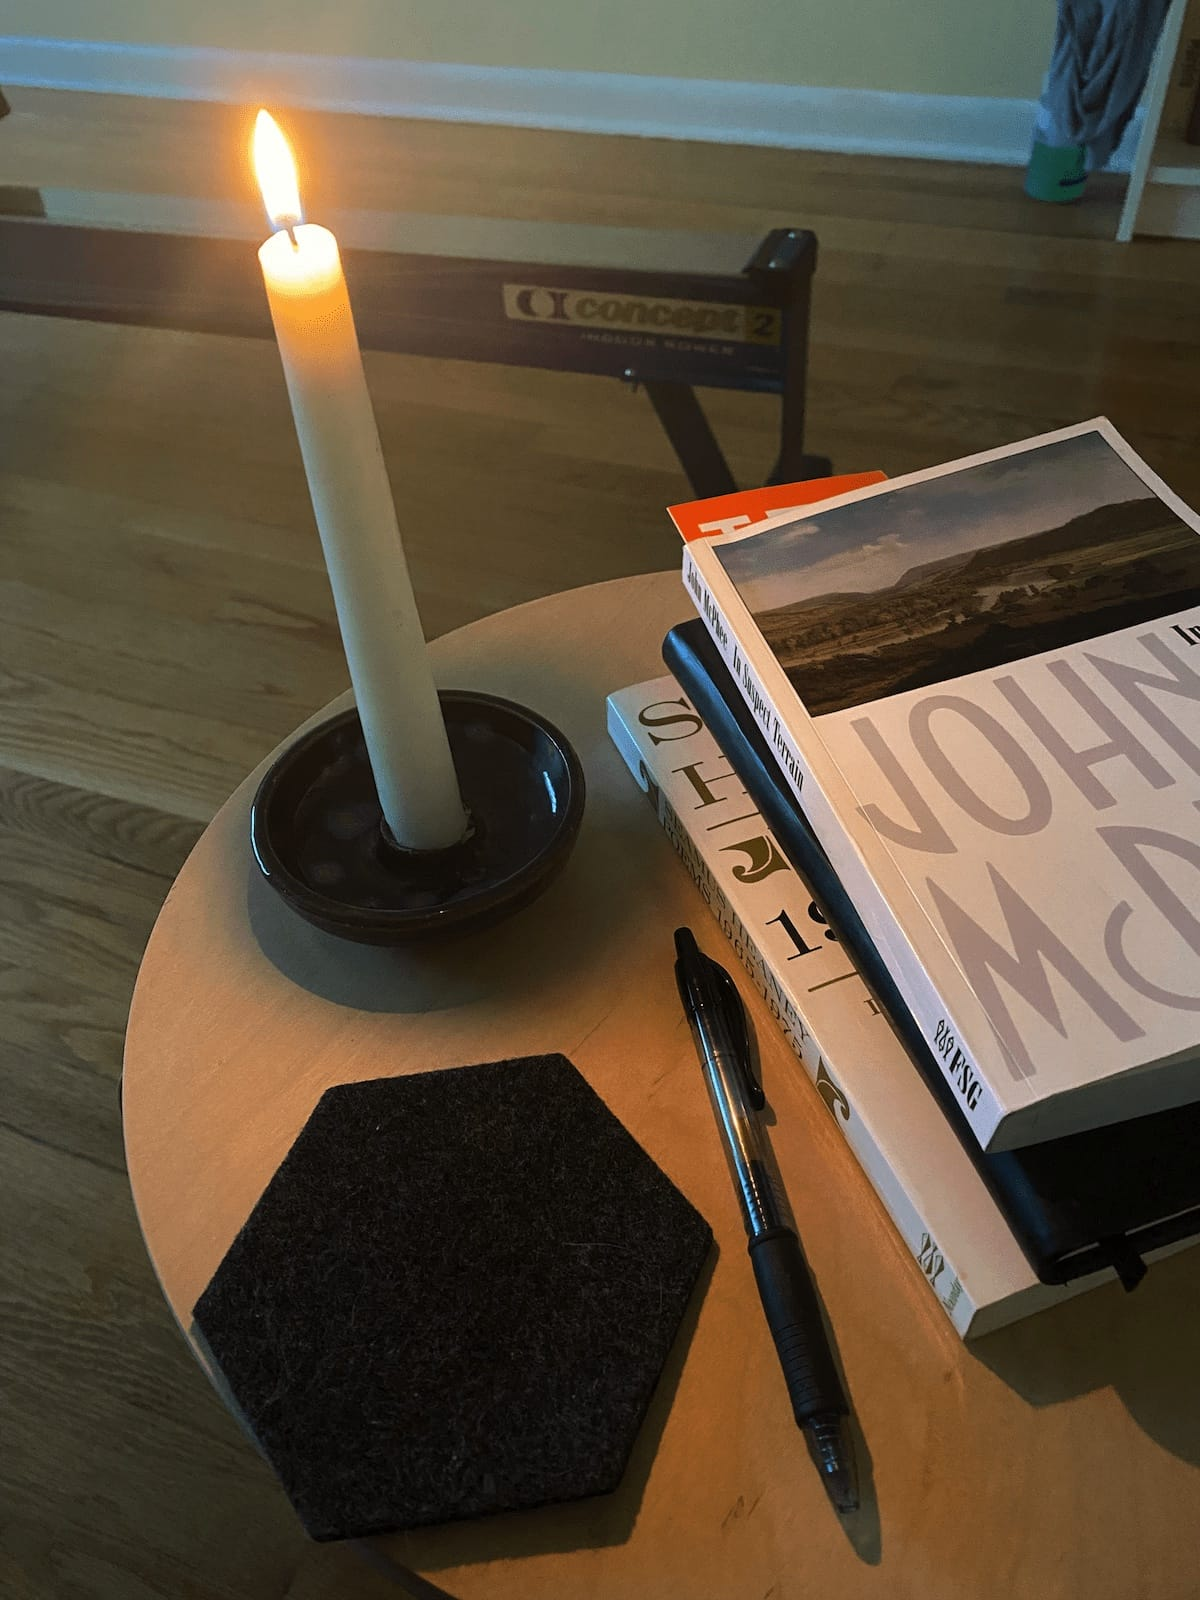 Taper candle with books and pen